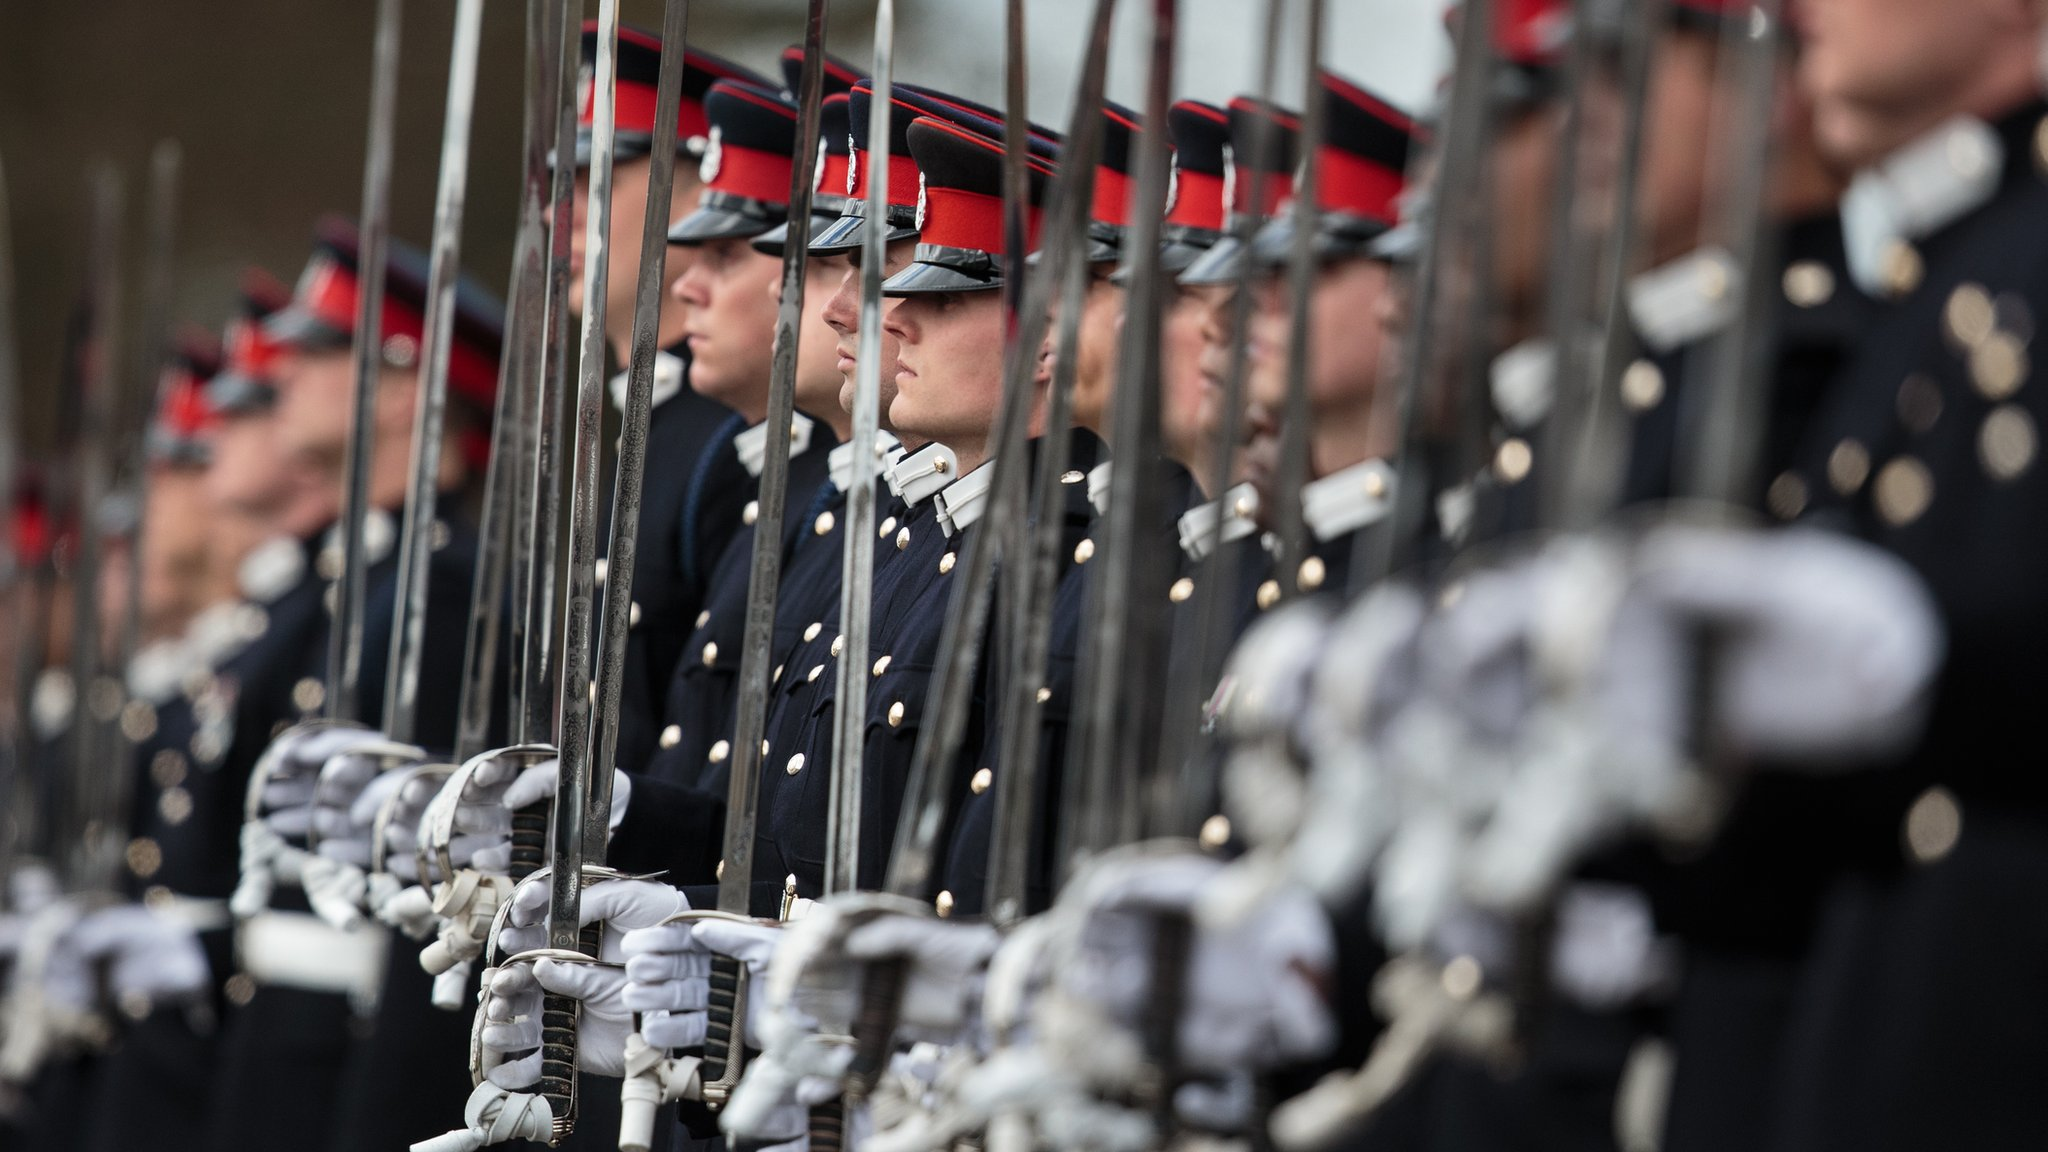 Are too many Army officers privately educated?